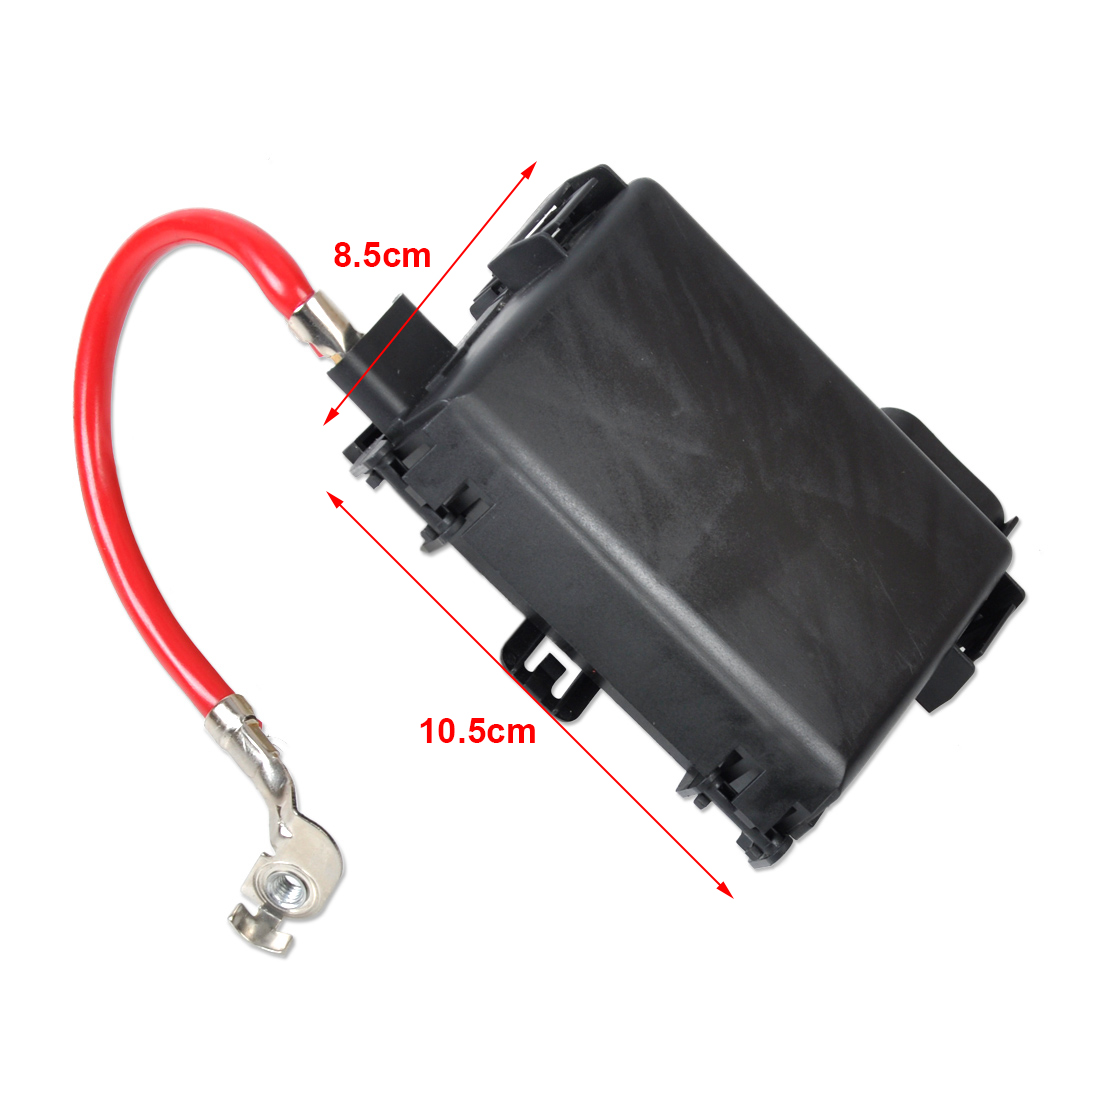 E2c Fuse Box Battery Terminal For Volkswagen Golf Jetta Beetle 2009 Cover Citall 1j0937550a Vw City Audi A3 S3